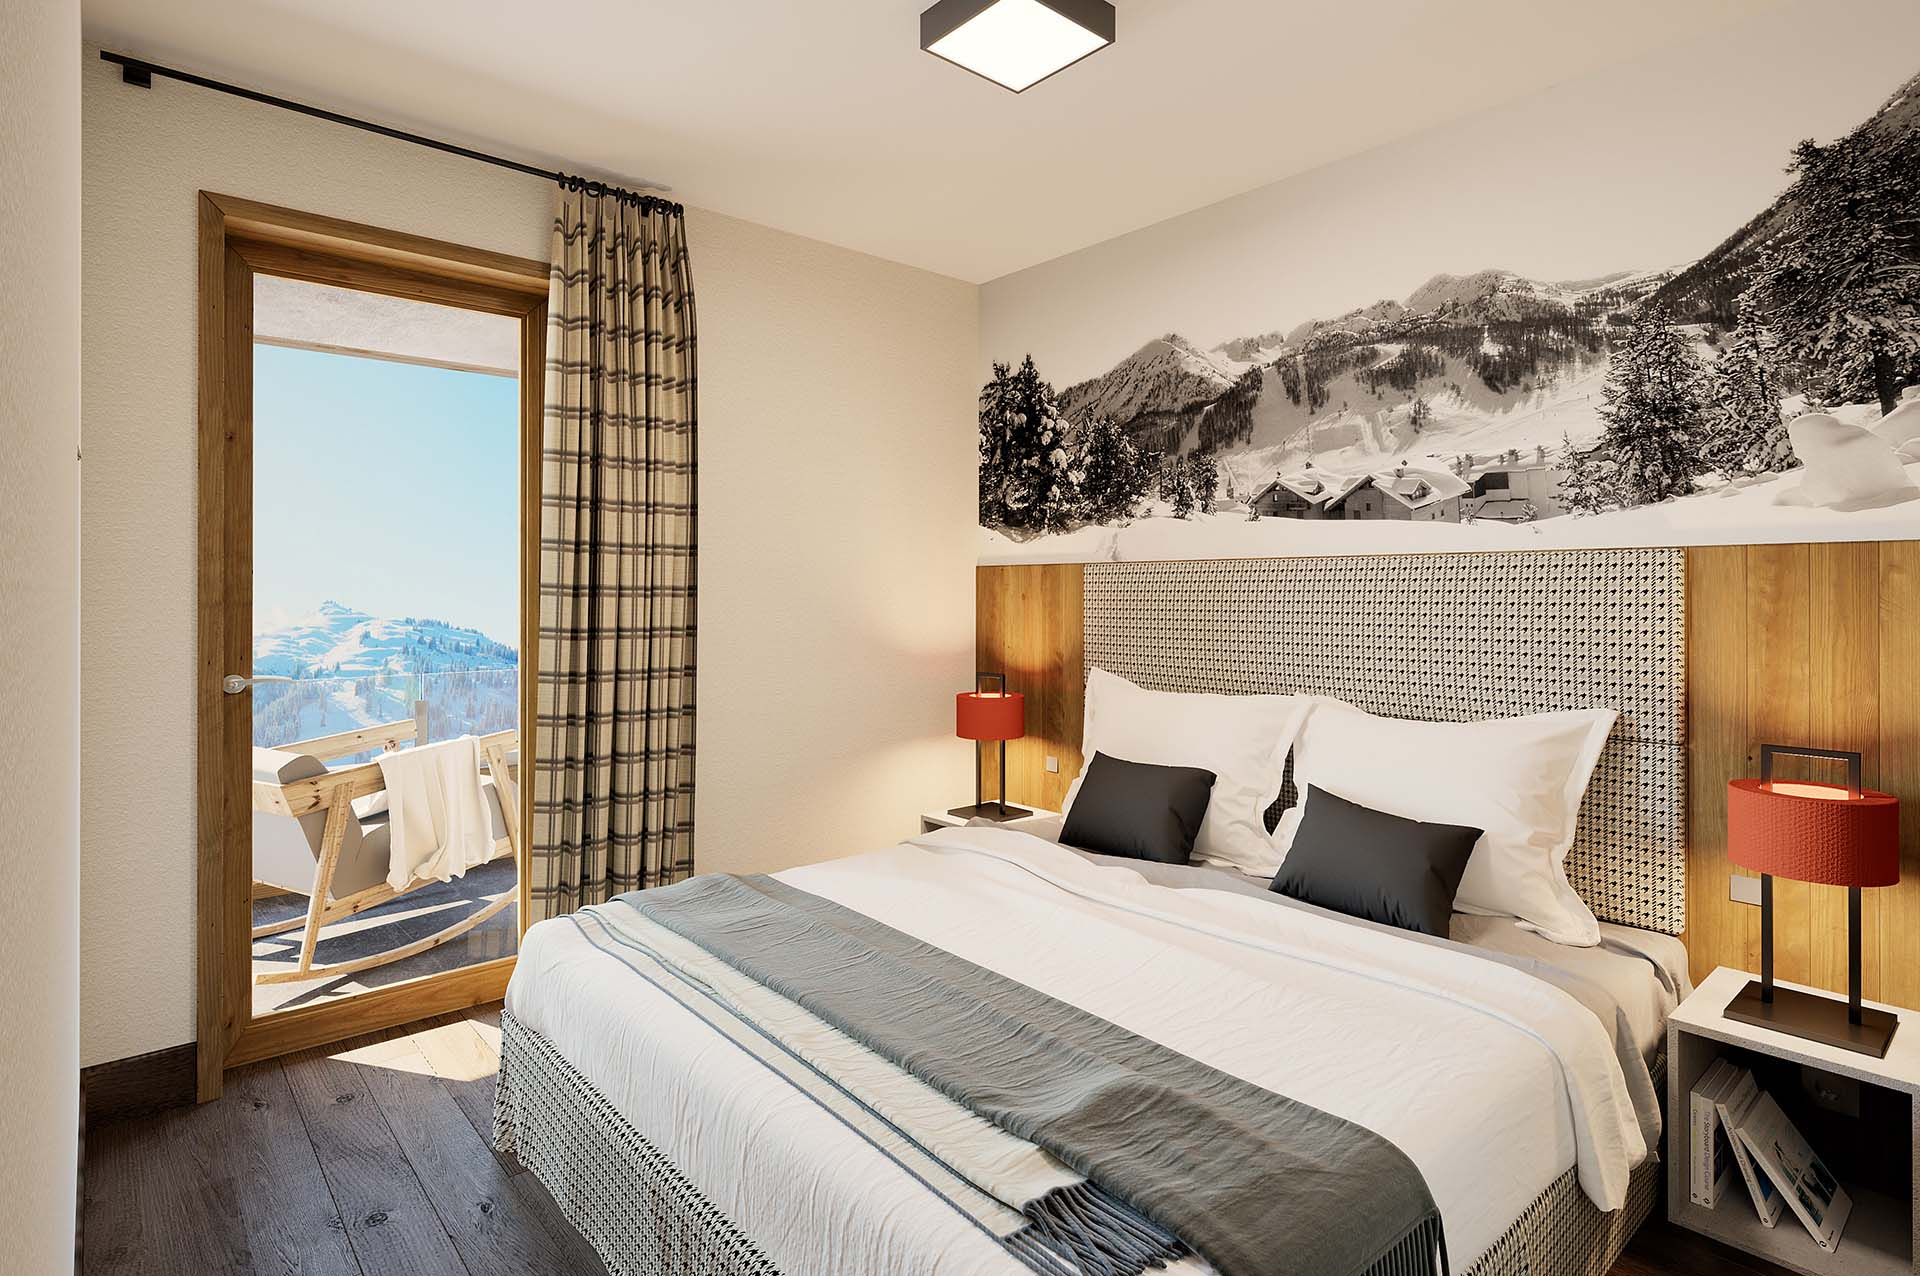 Creation 3D luxurious room for real estate promotion.